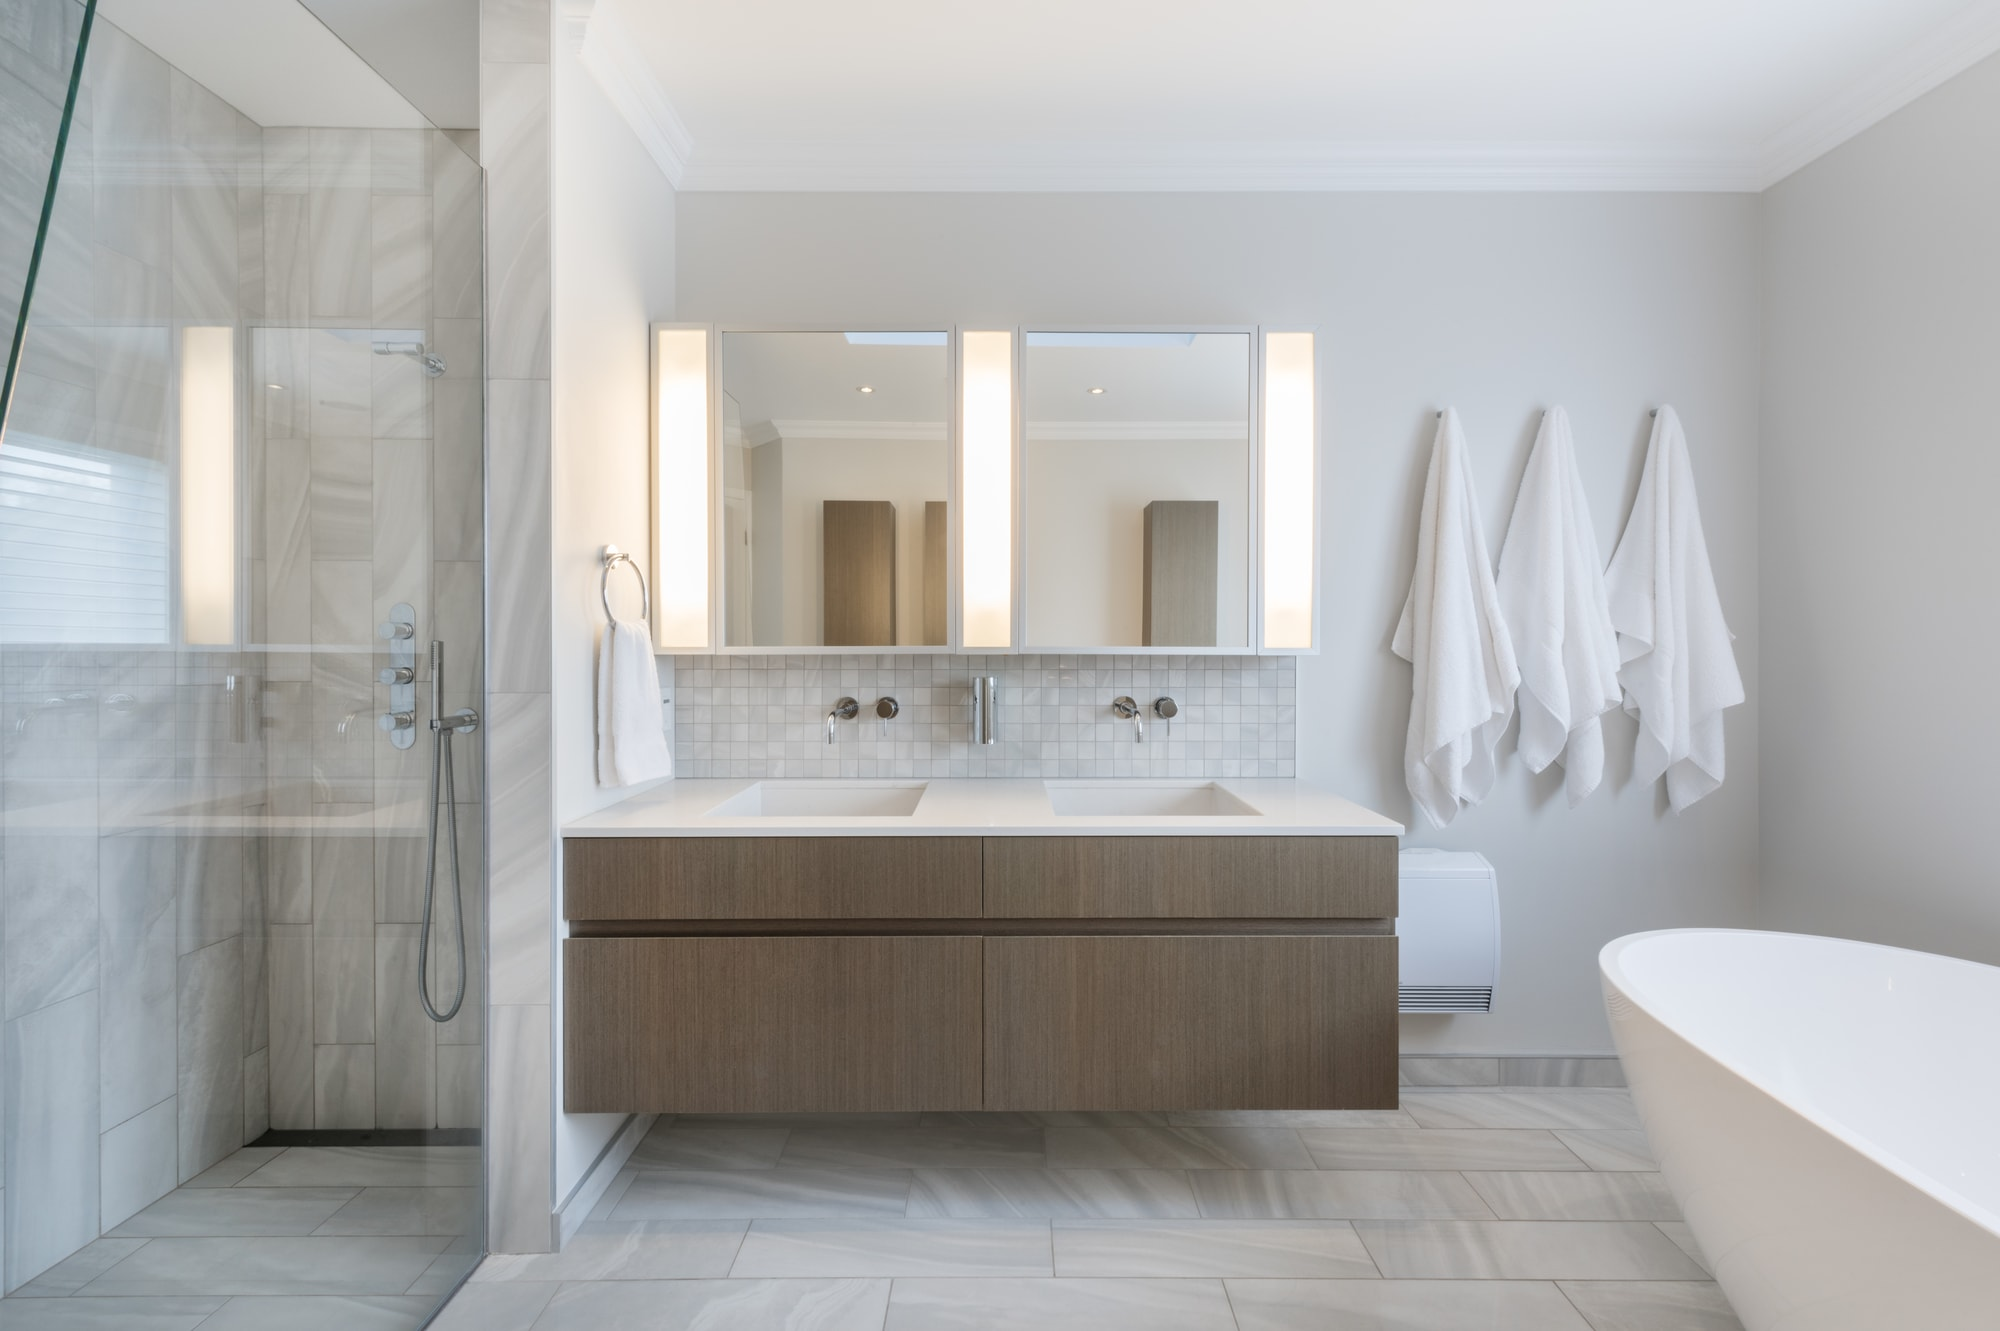 modern renovated bathroom with double sinks, glass shower, and standing bath